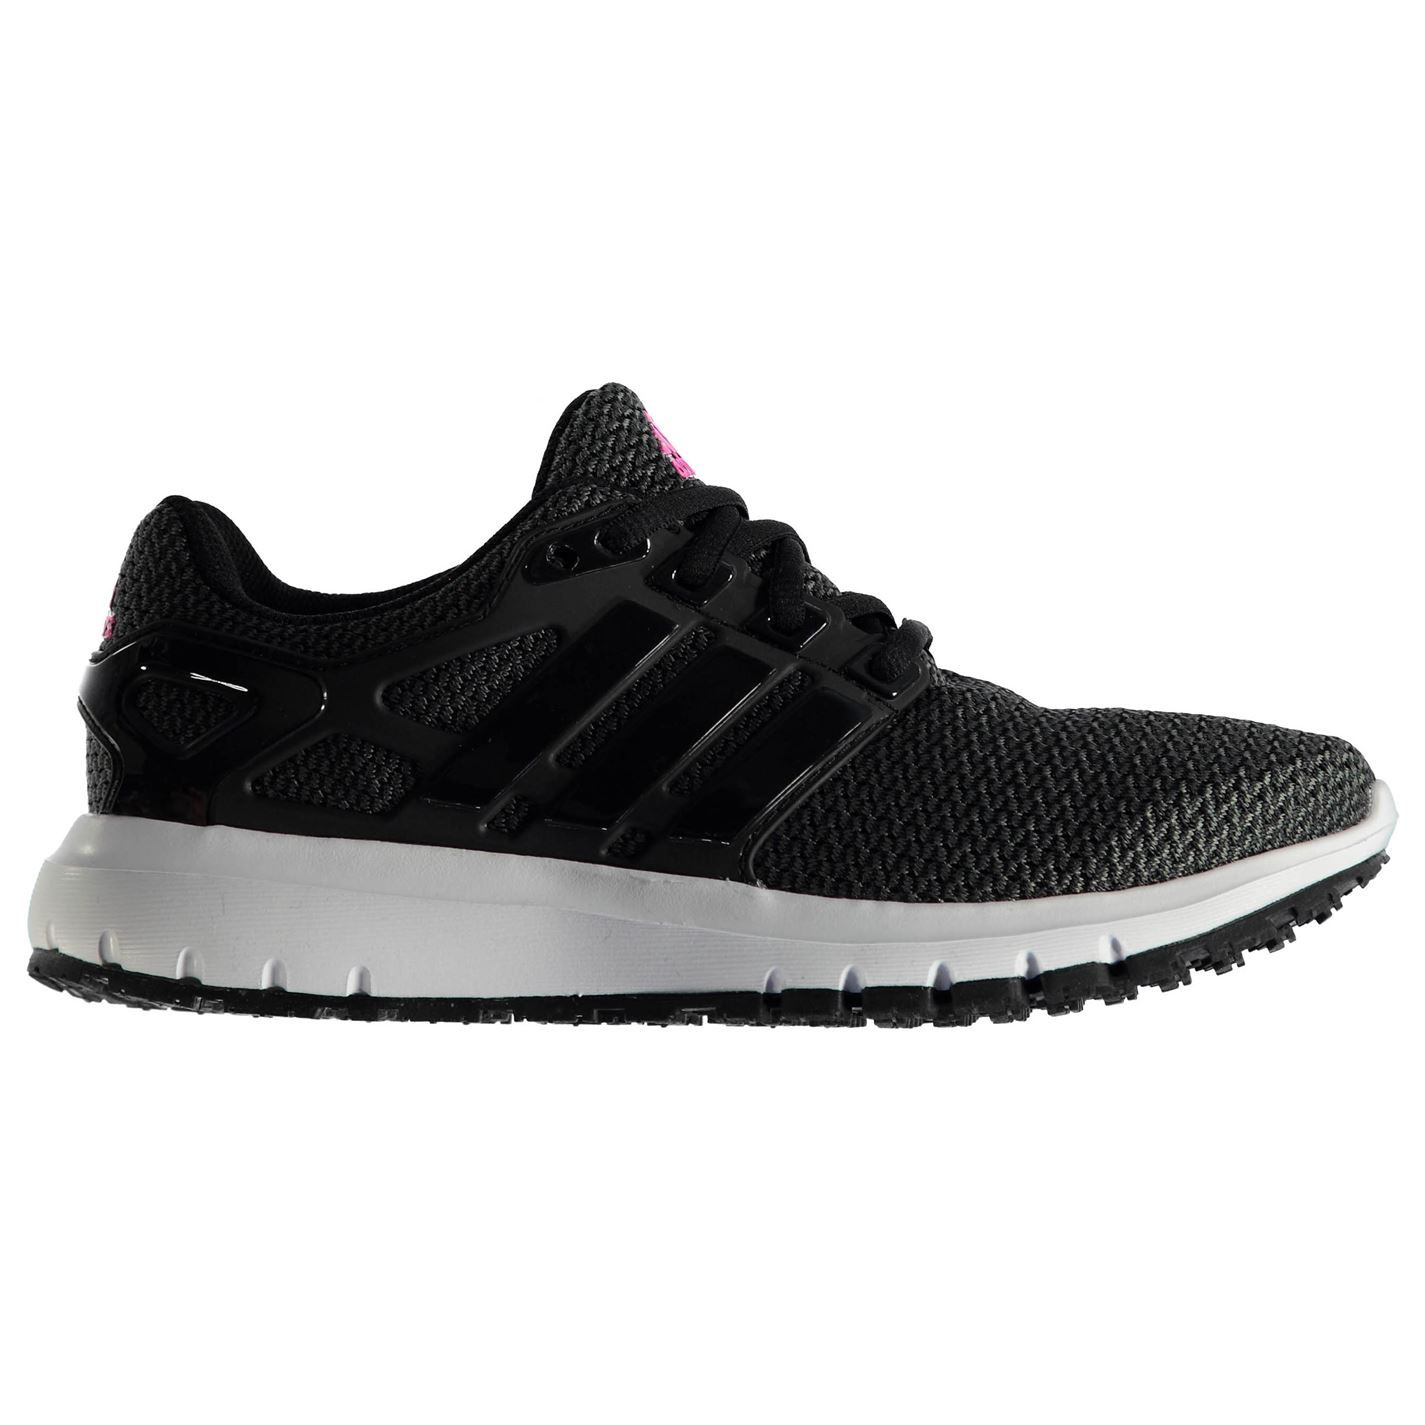 adidas | adidas Energy Cloud Running Shoes Ladies | Nylon Runners